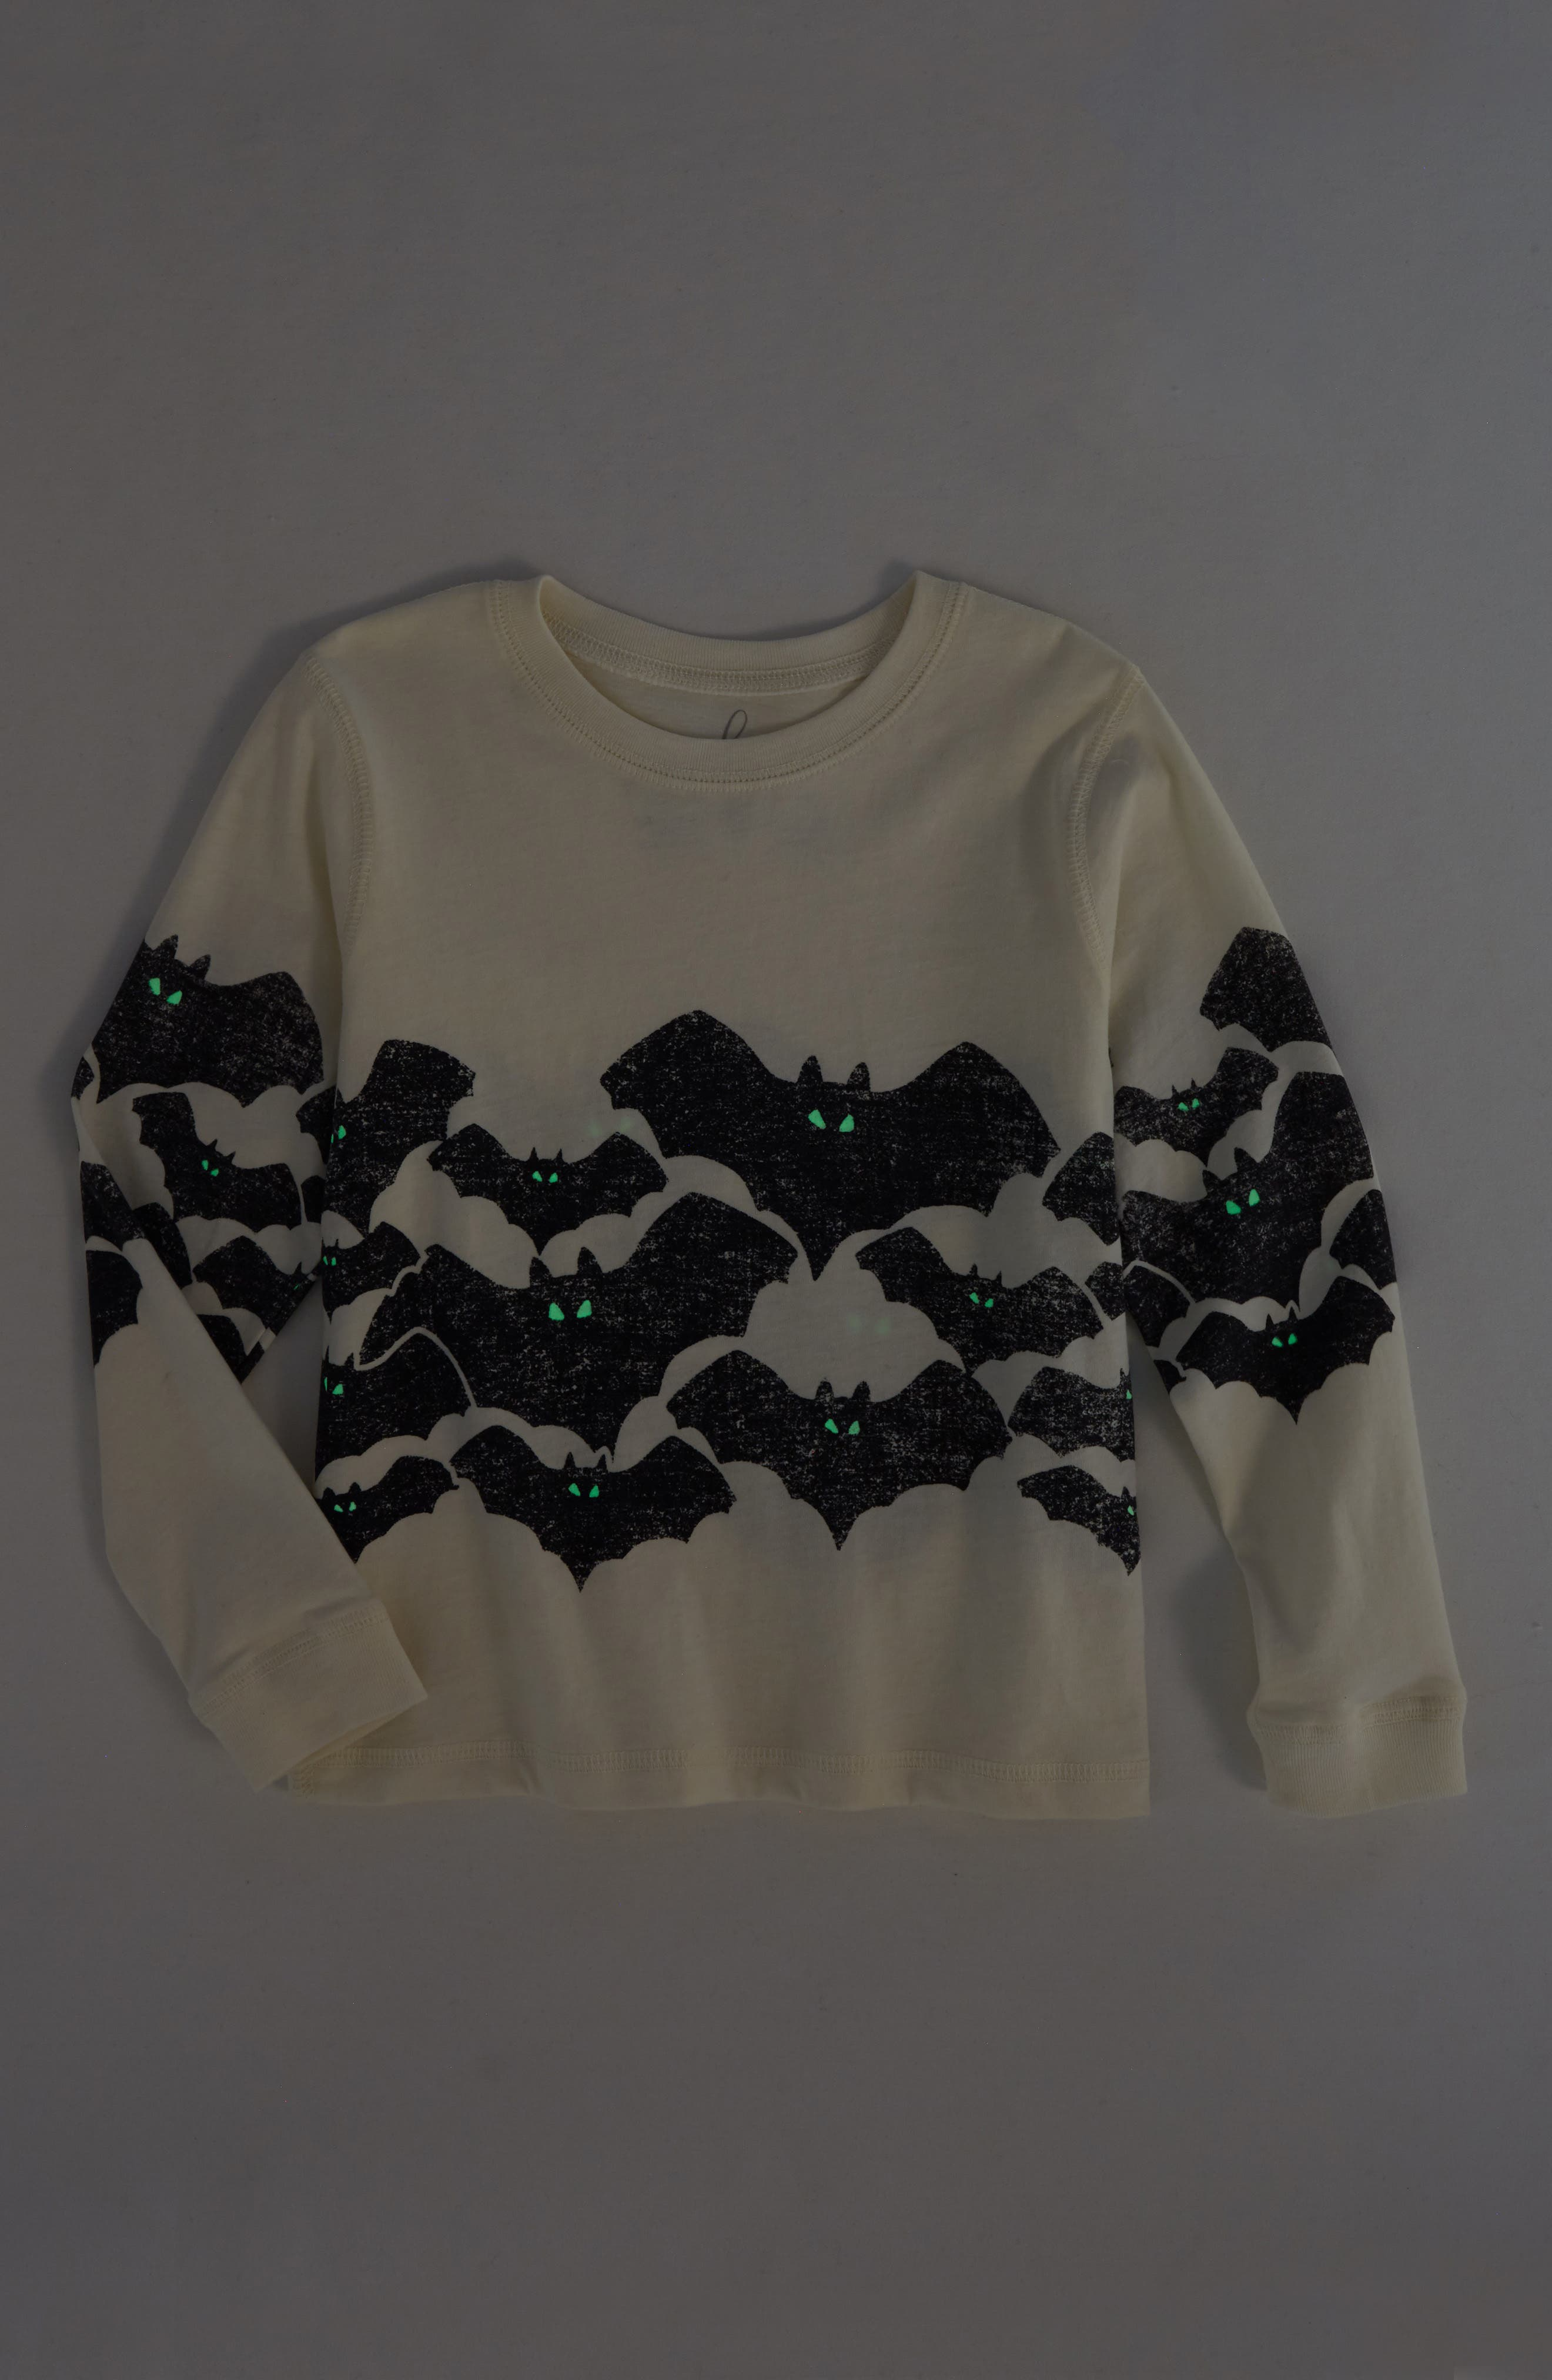 Bats Glow in the Dark T-Shirt,                             Alternate thumbnail 2, color,                             Ivory